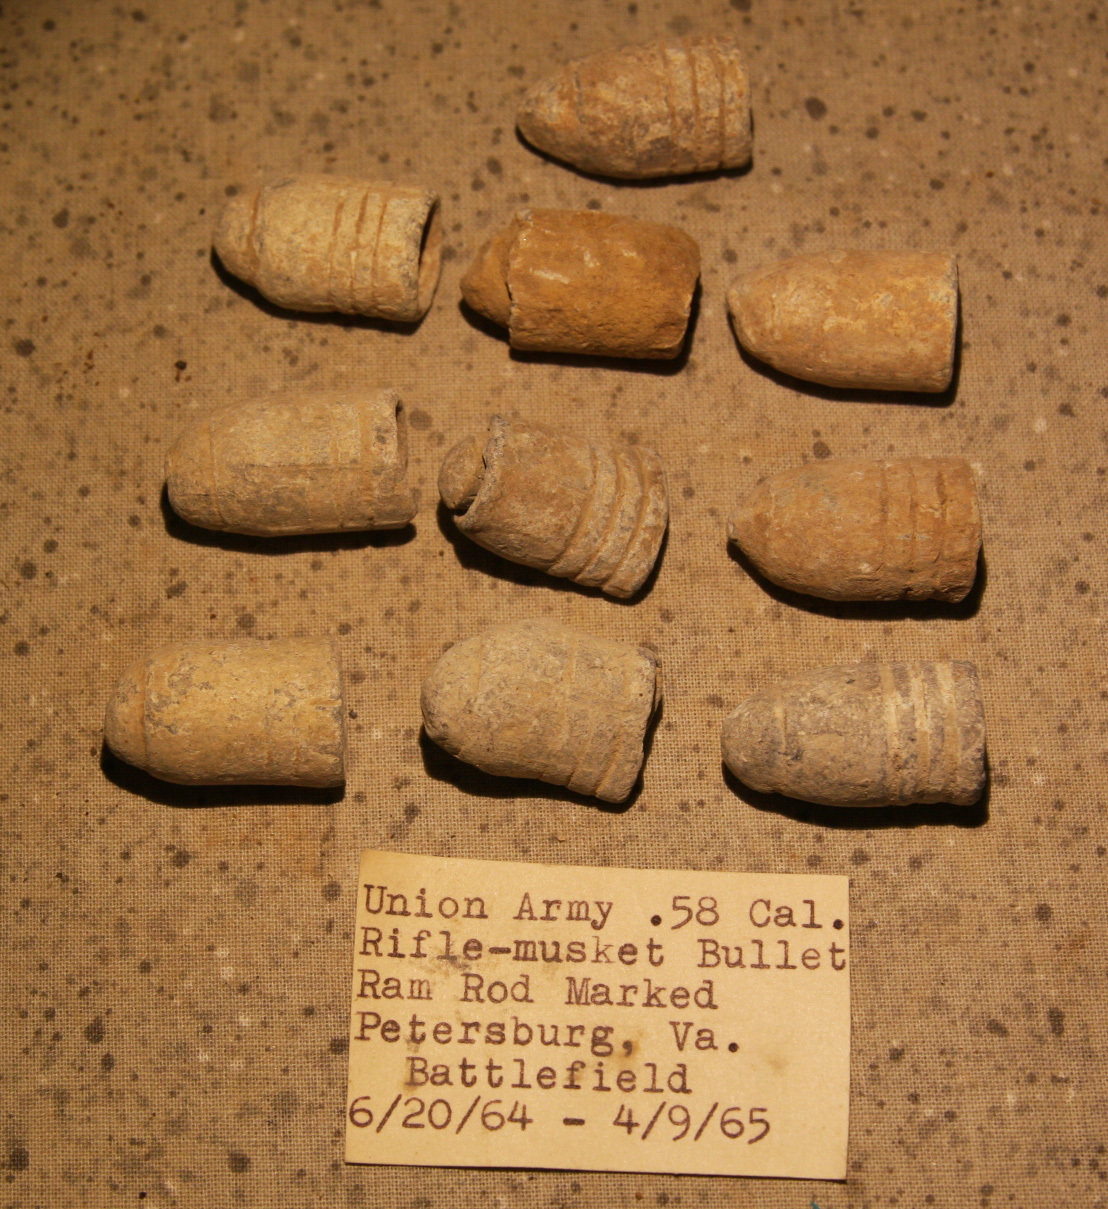 CLEARANCE - REDUCED 40% - THE SIEGE OF PETERSBURG - 10 Bullets with Ram Rod Marks - with Original Collection Label RG-PBG07a